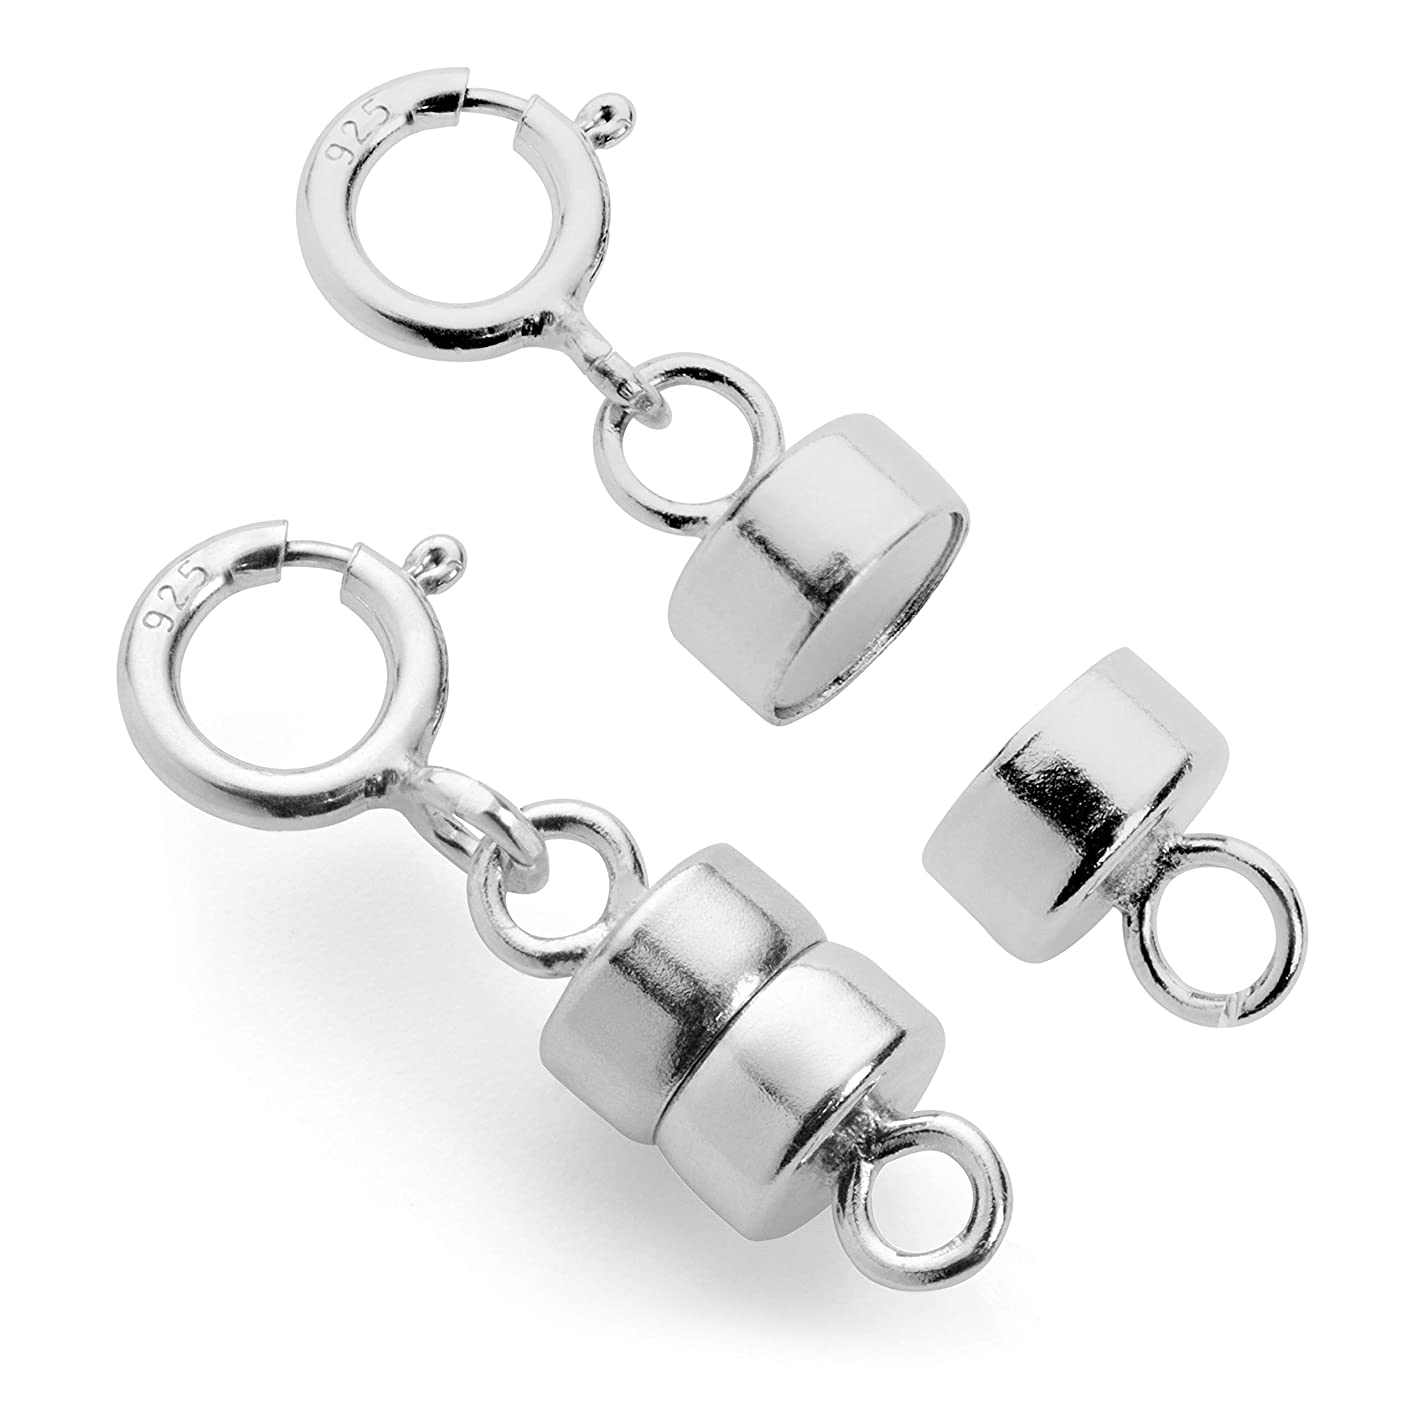 Magnetic Clasp Converter for Necklaces or Bracelets - 14K Yellow Gold, Yellow Gold Filled or Sterling Silver whxlvuwicon762